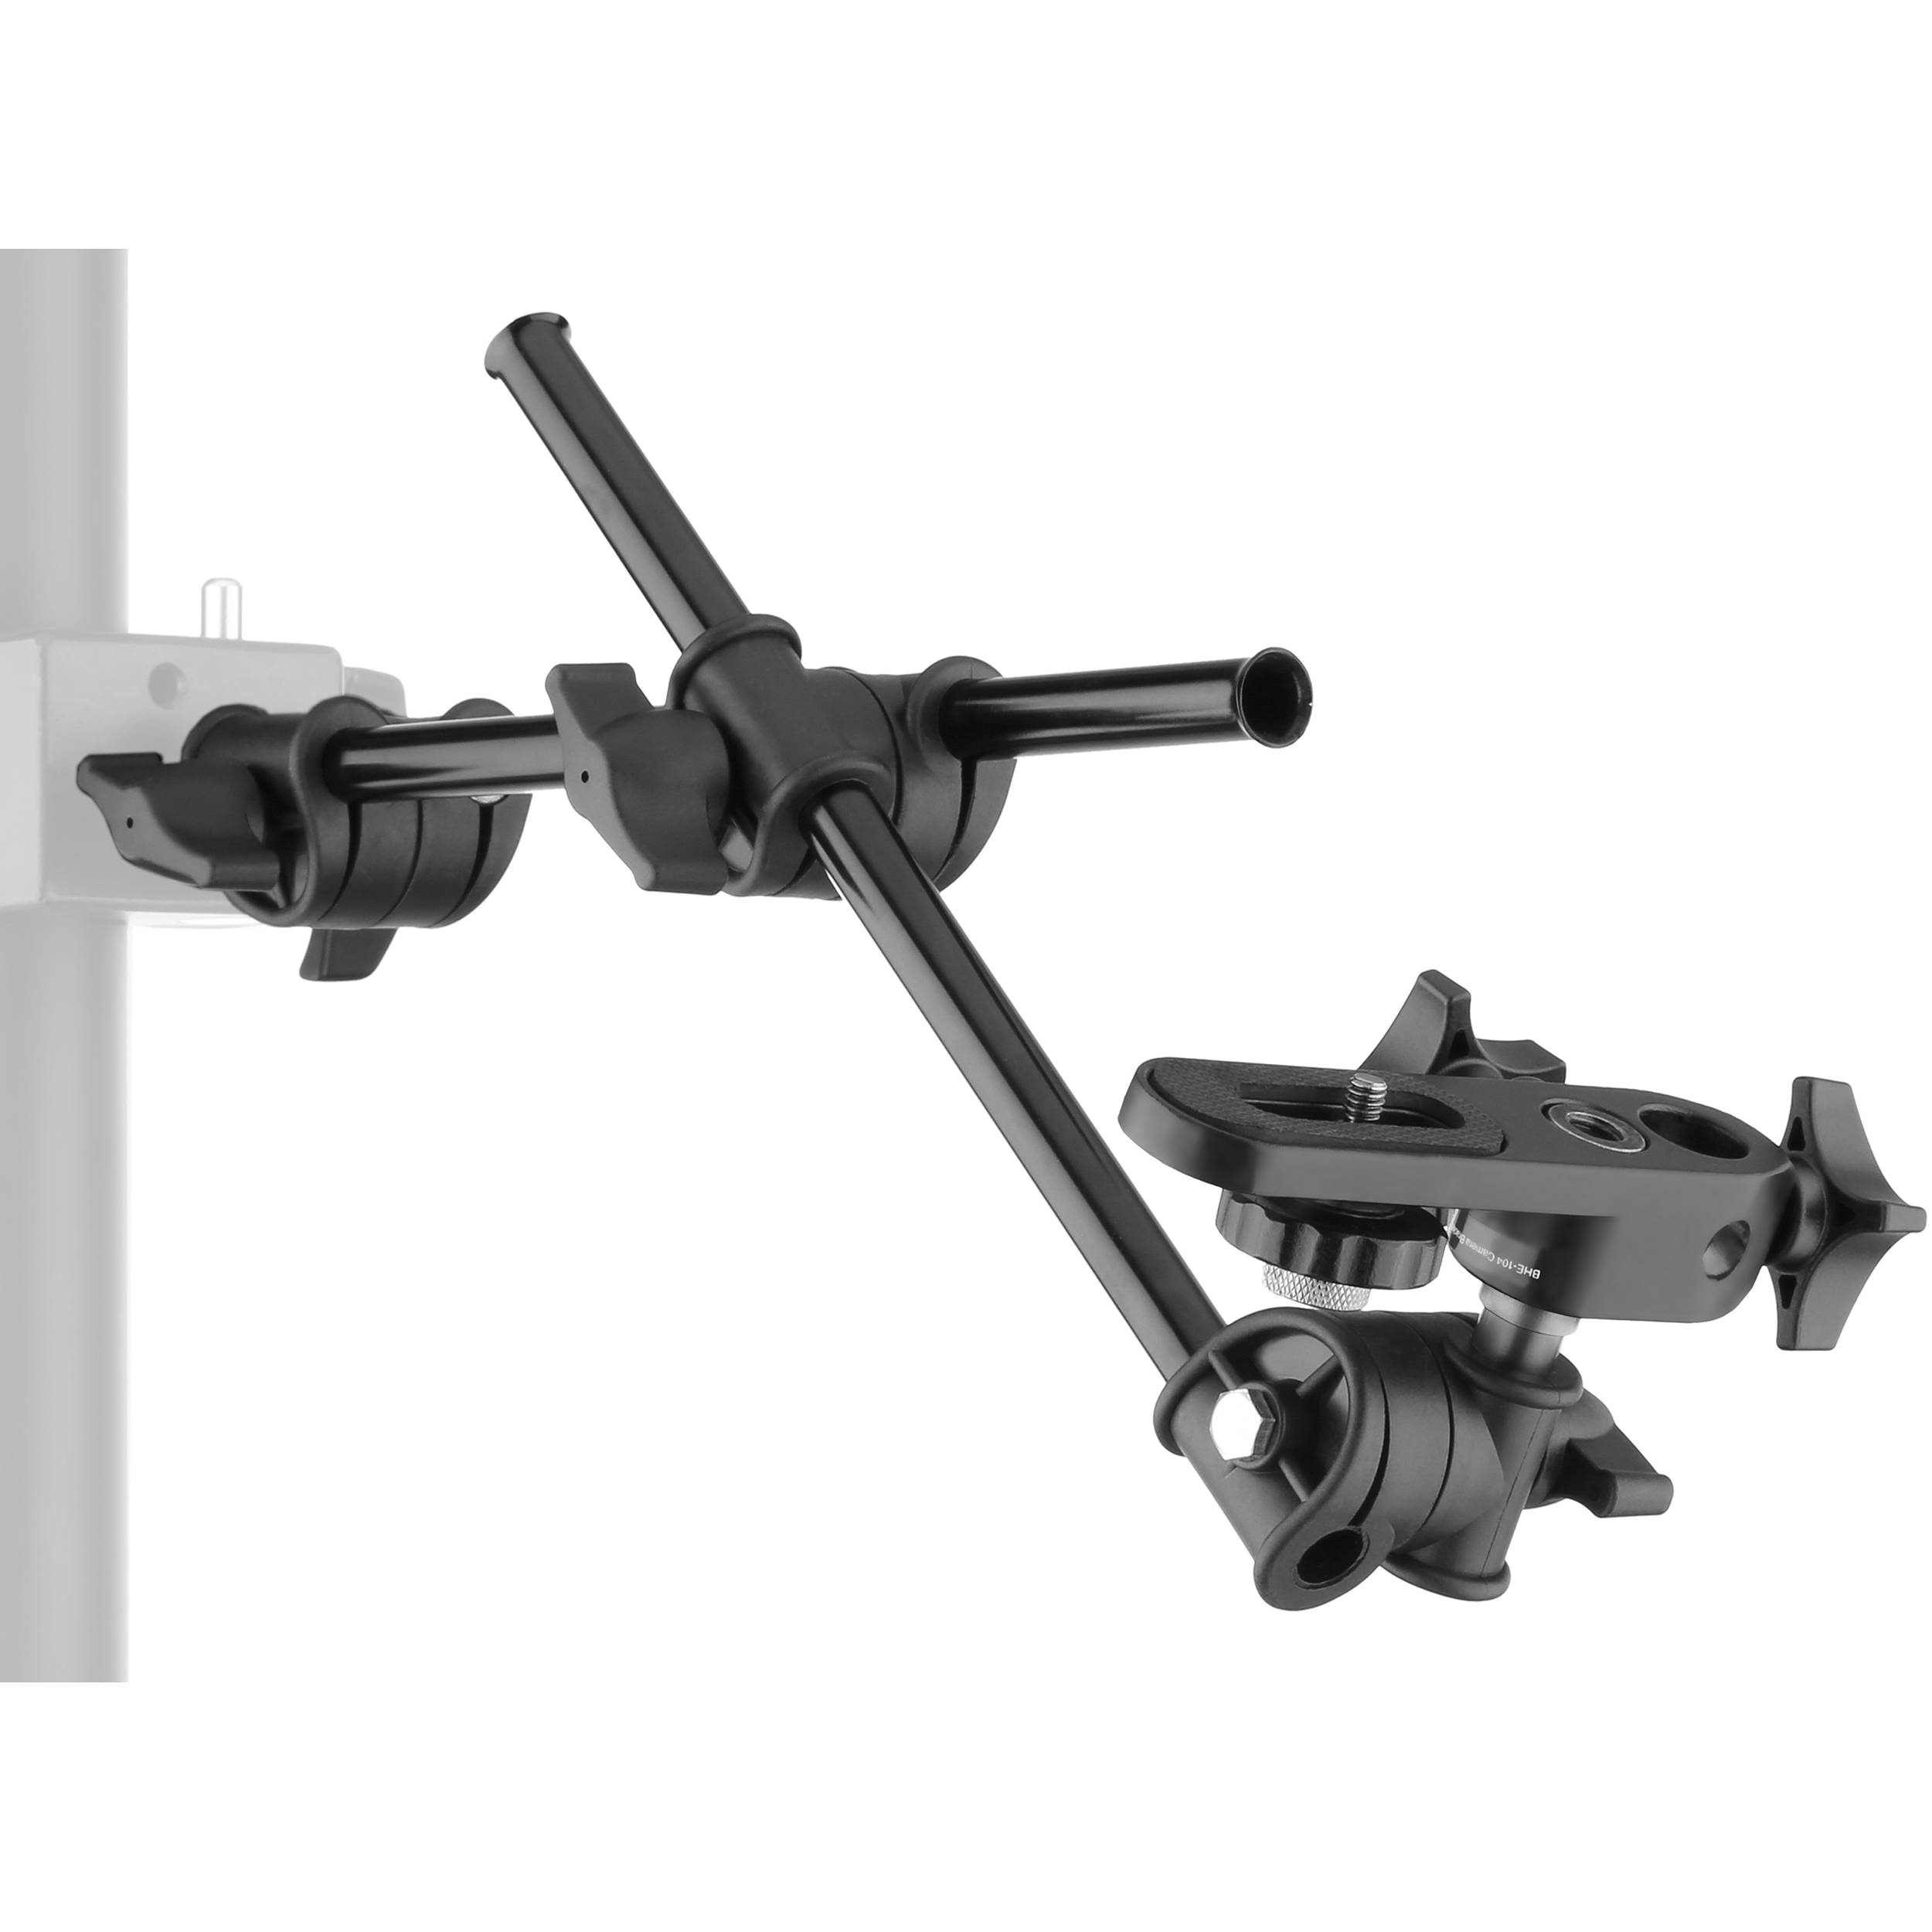 Impact 2 Section Articulated Arm with Camera Bracket BHE-107K